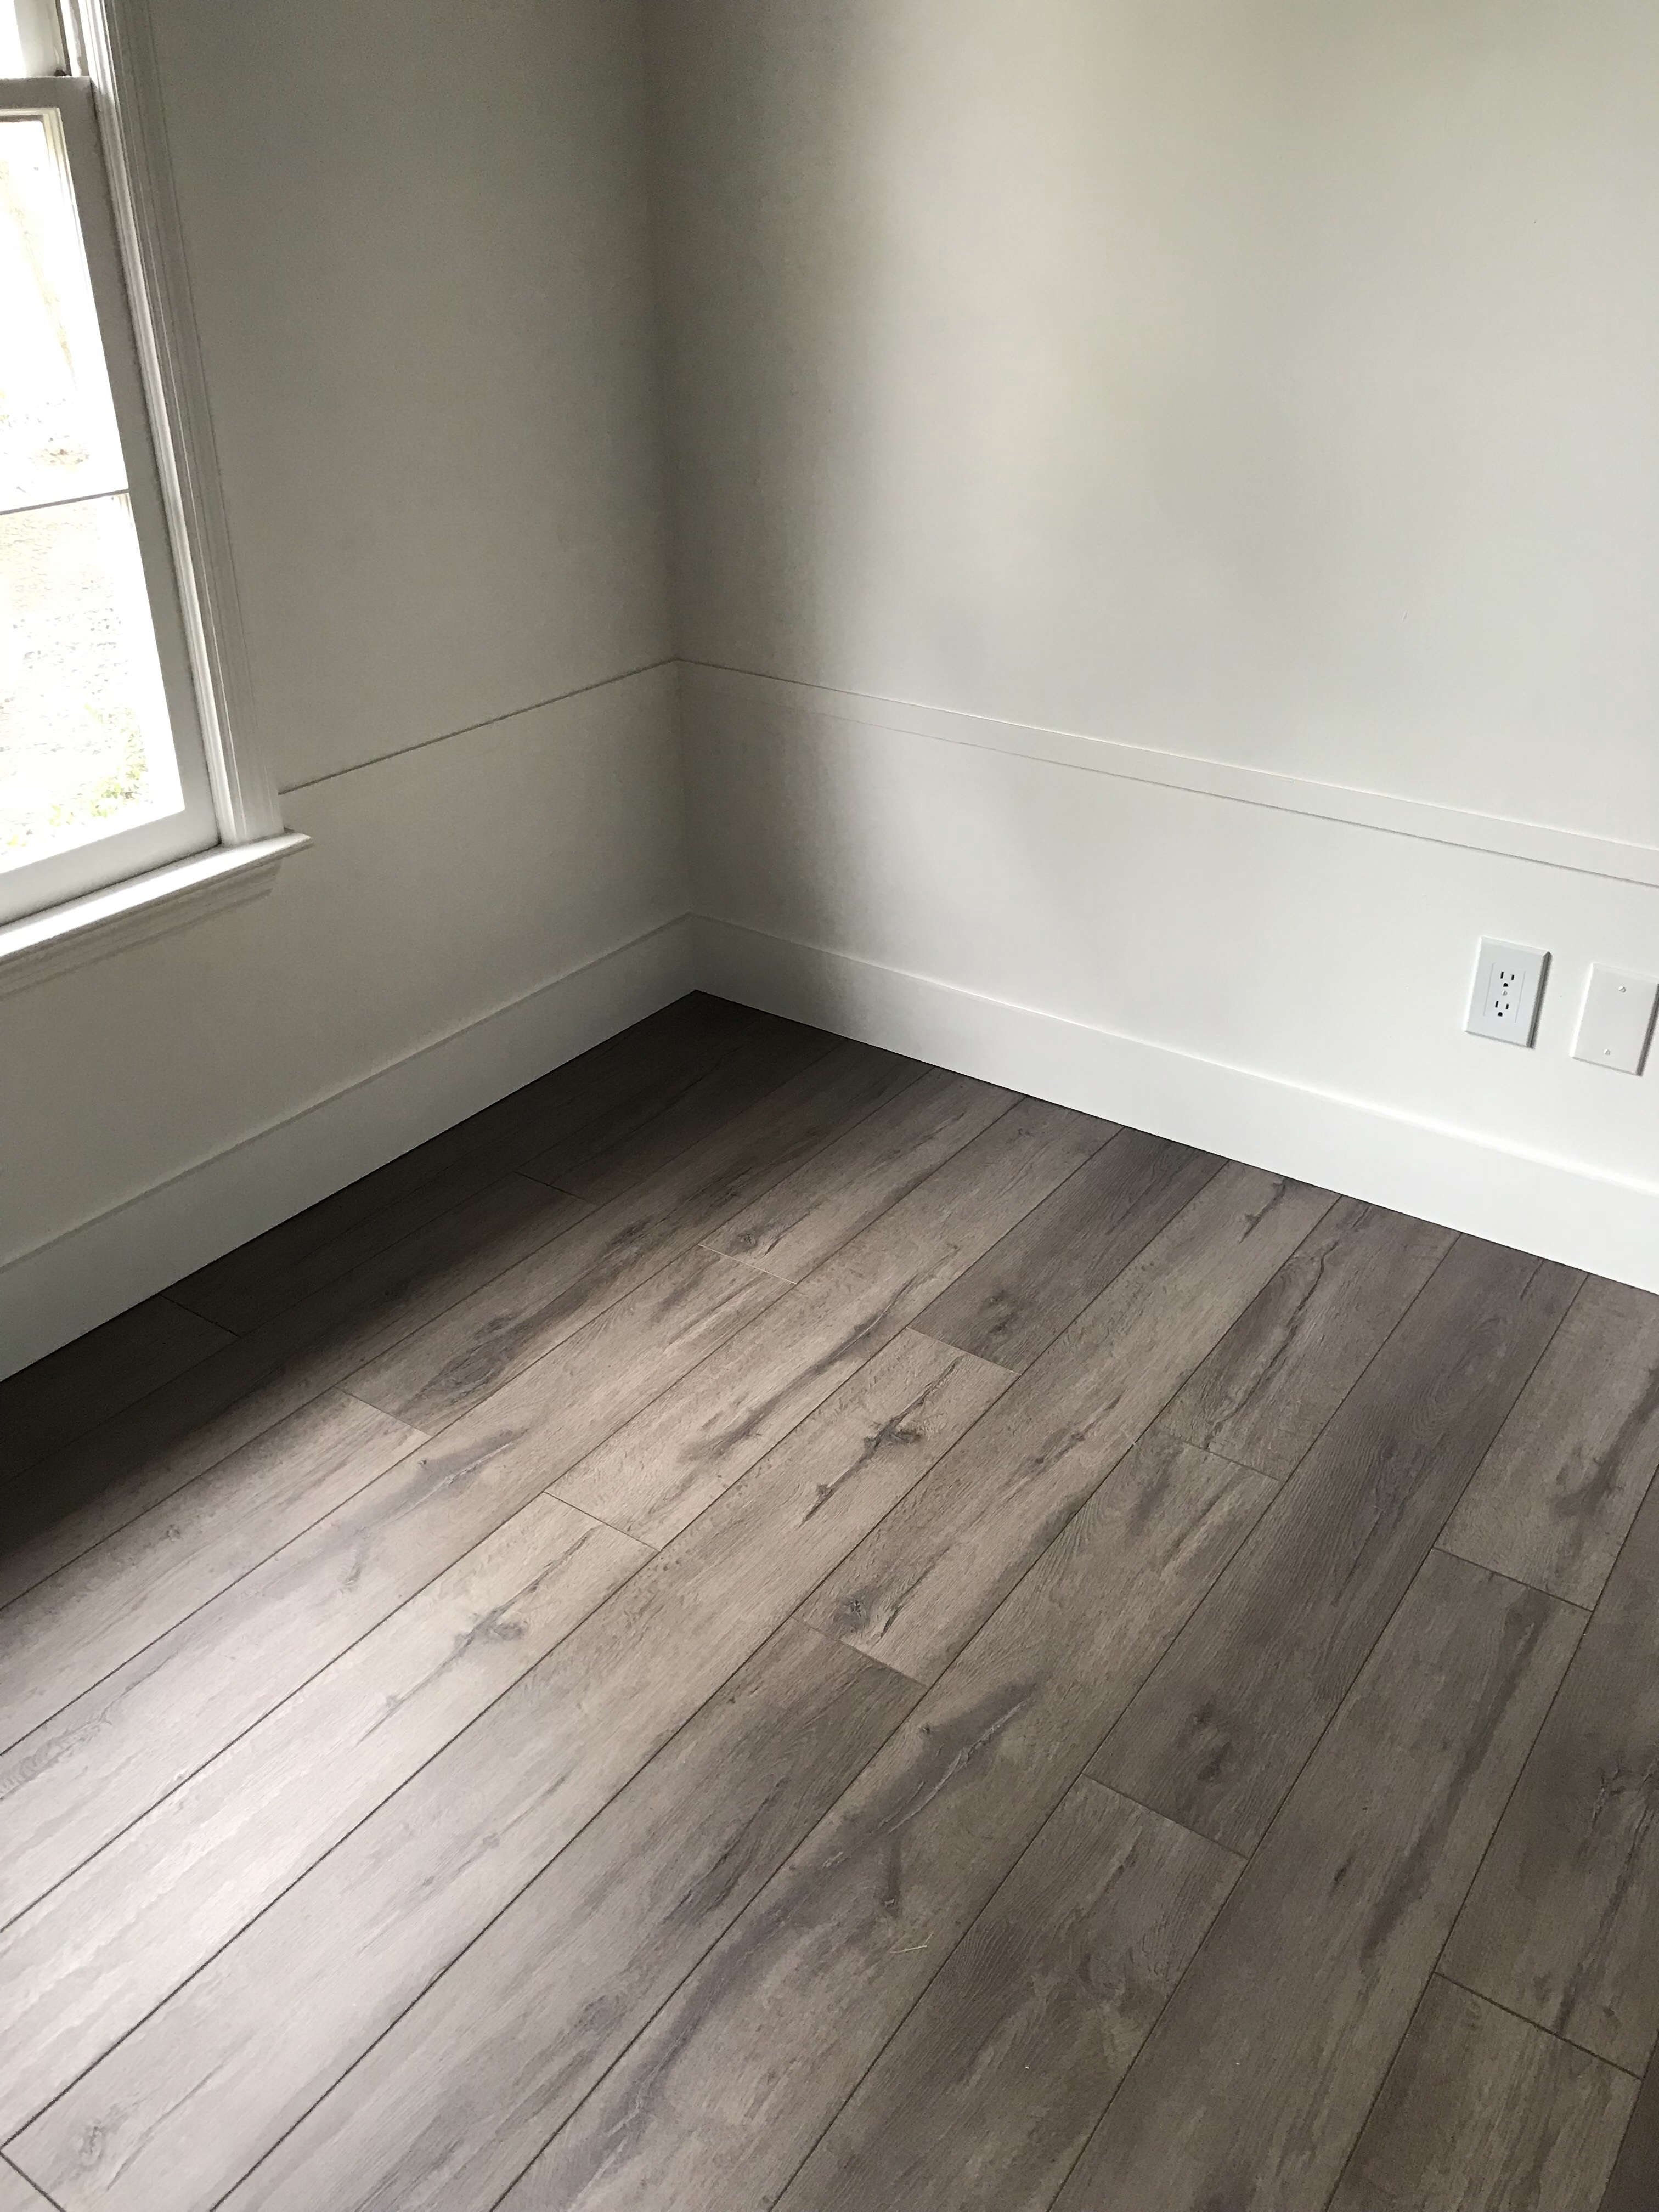 Wimpy Baseboards Be Gone Easy Diy Upgrade For Thicker